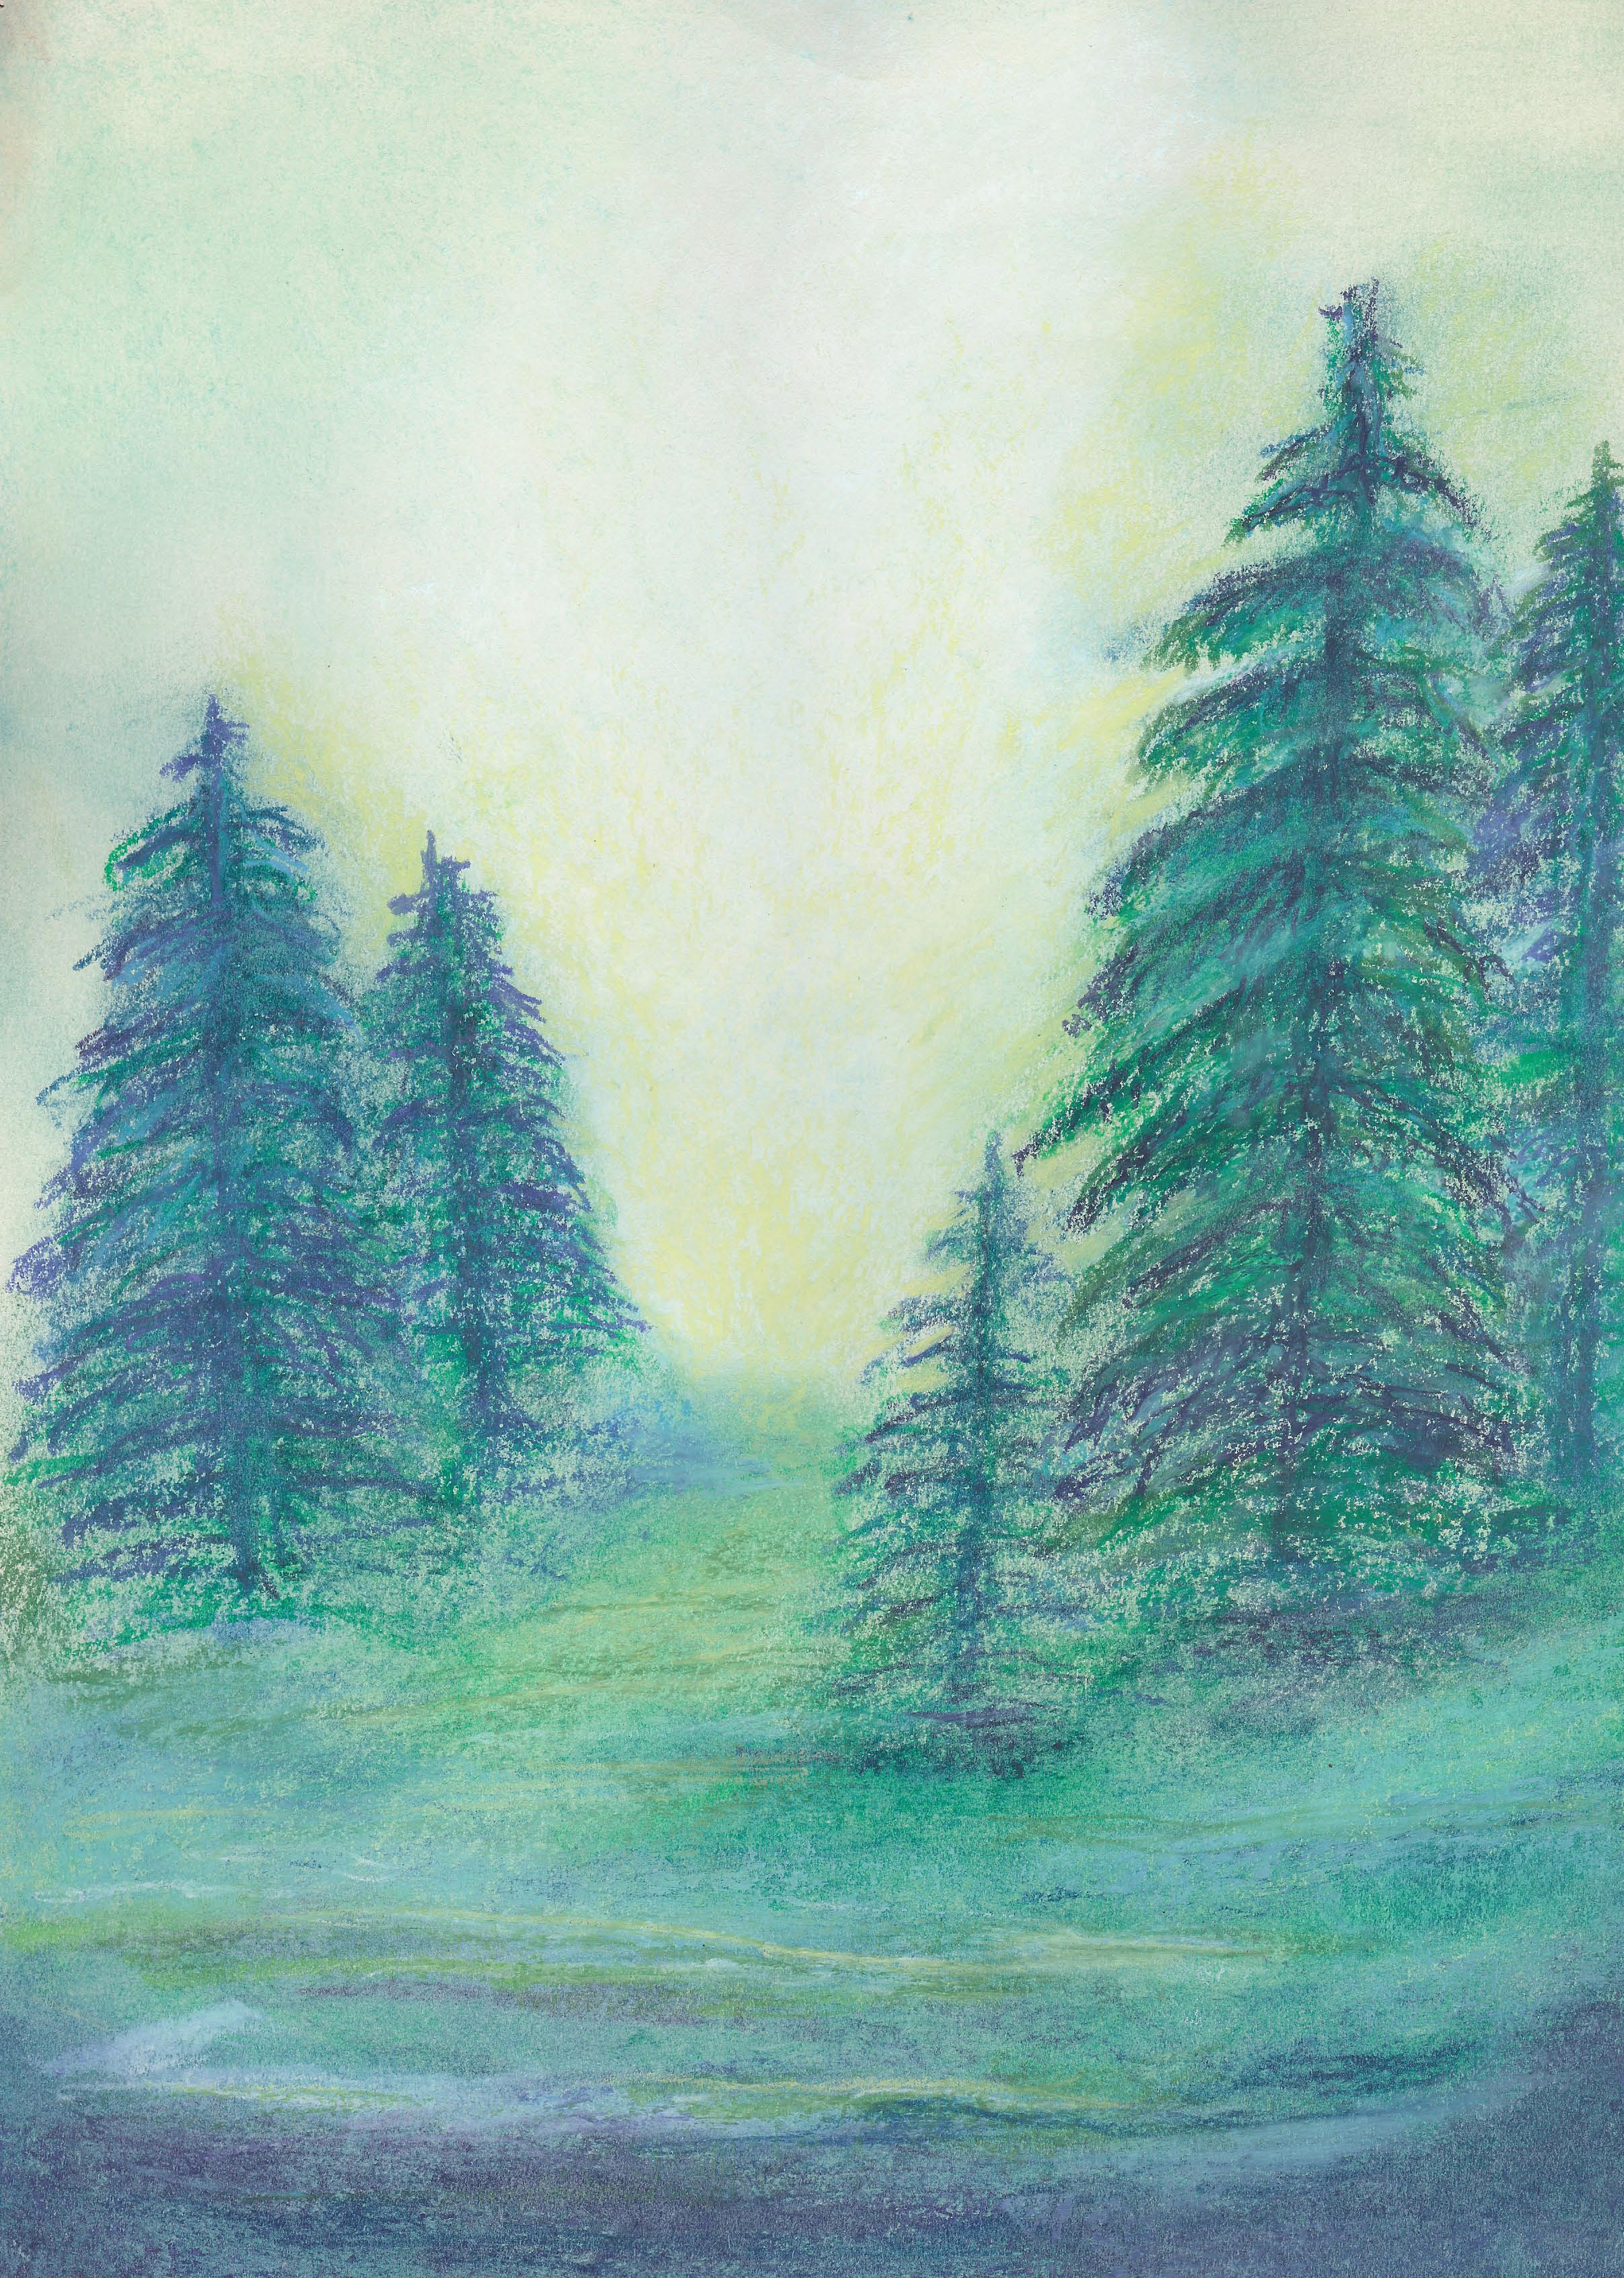 A Small Stand of Trees - Oil Pastel 8 X 11 - $90